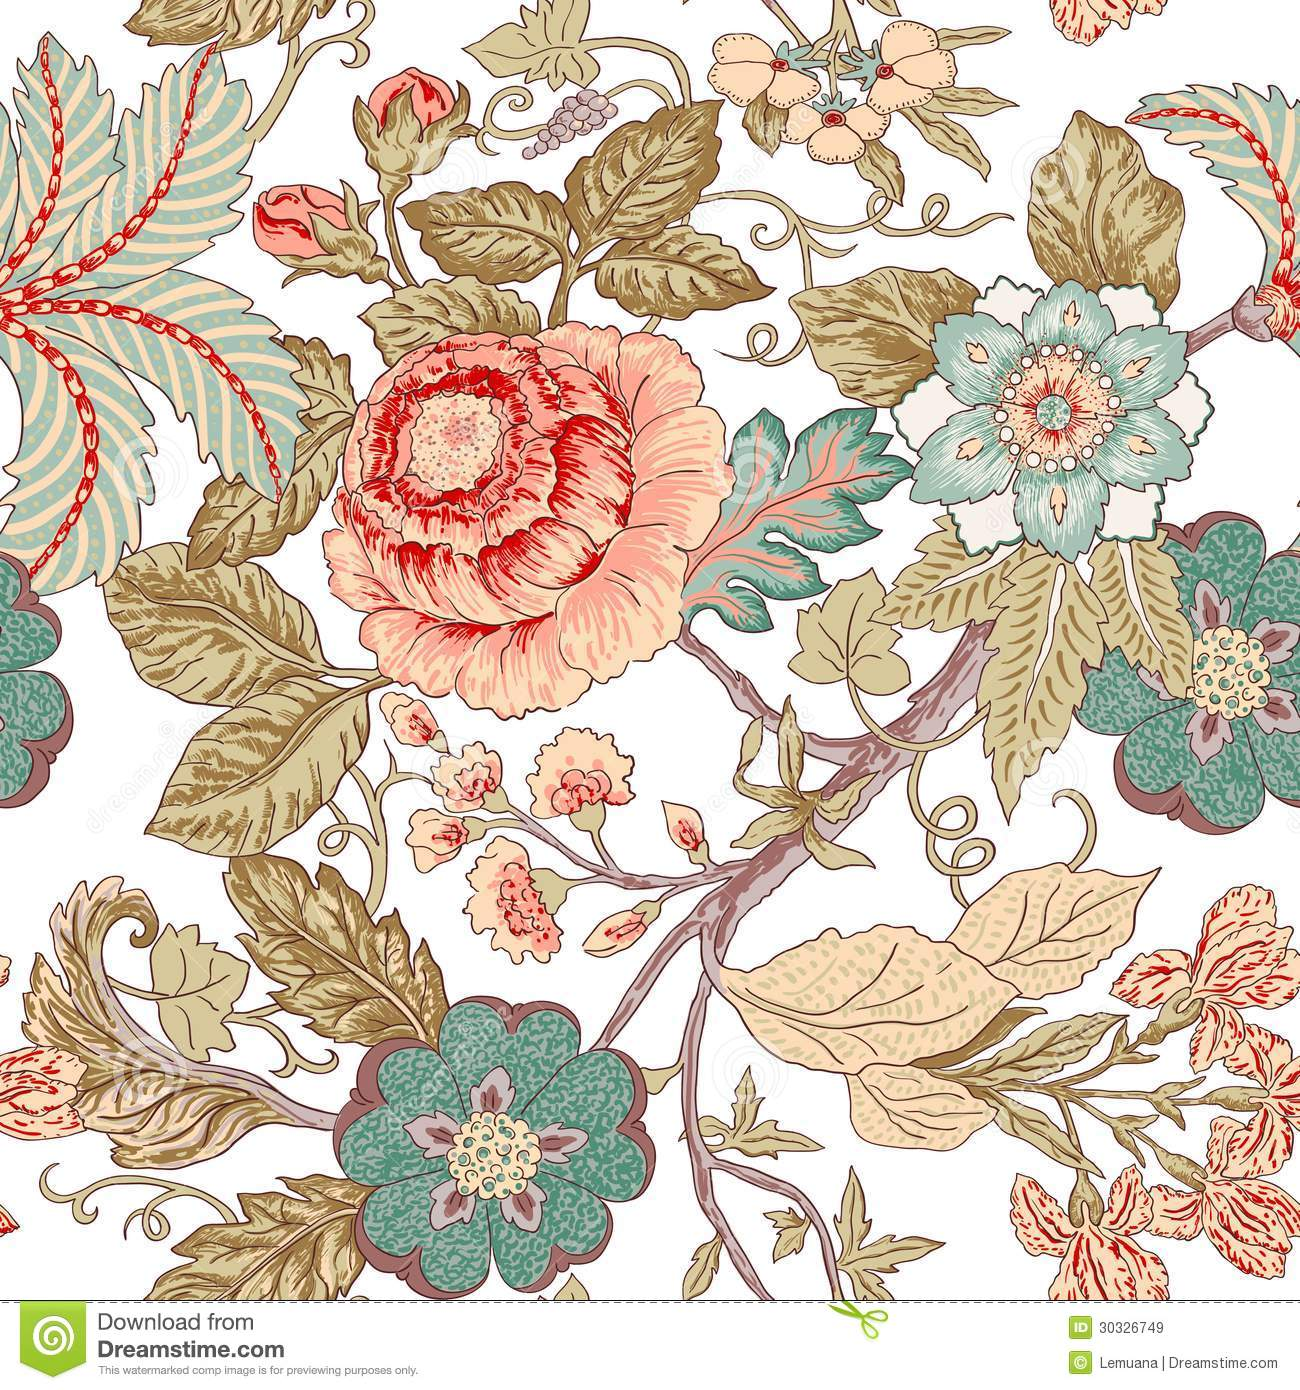 Vintage Flower Pattern Stock Vector. Image Of Artistic